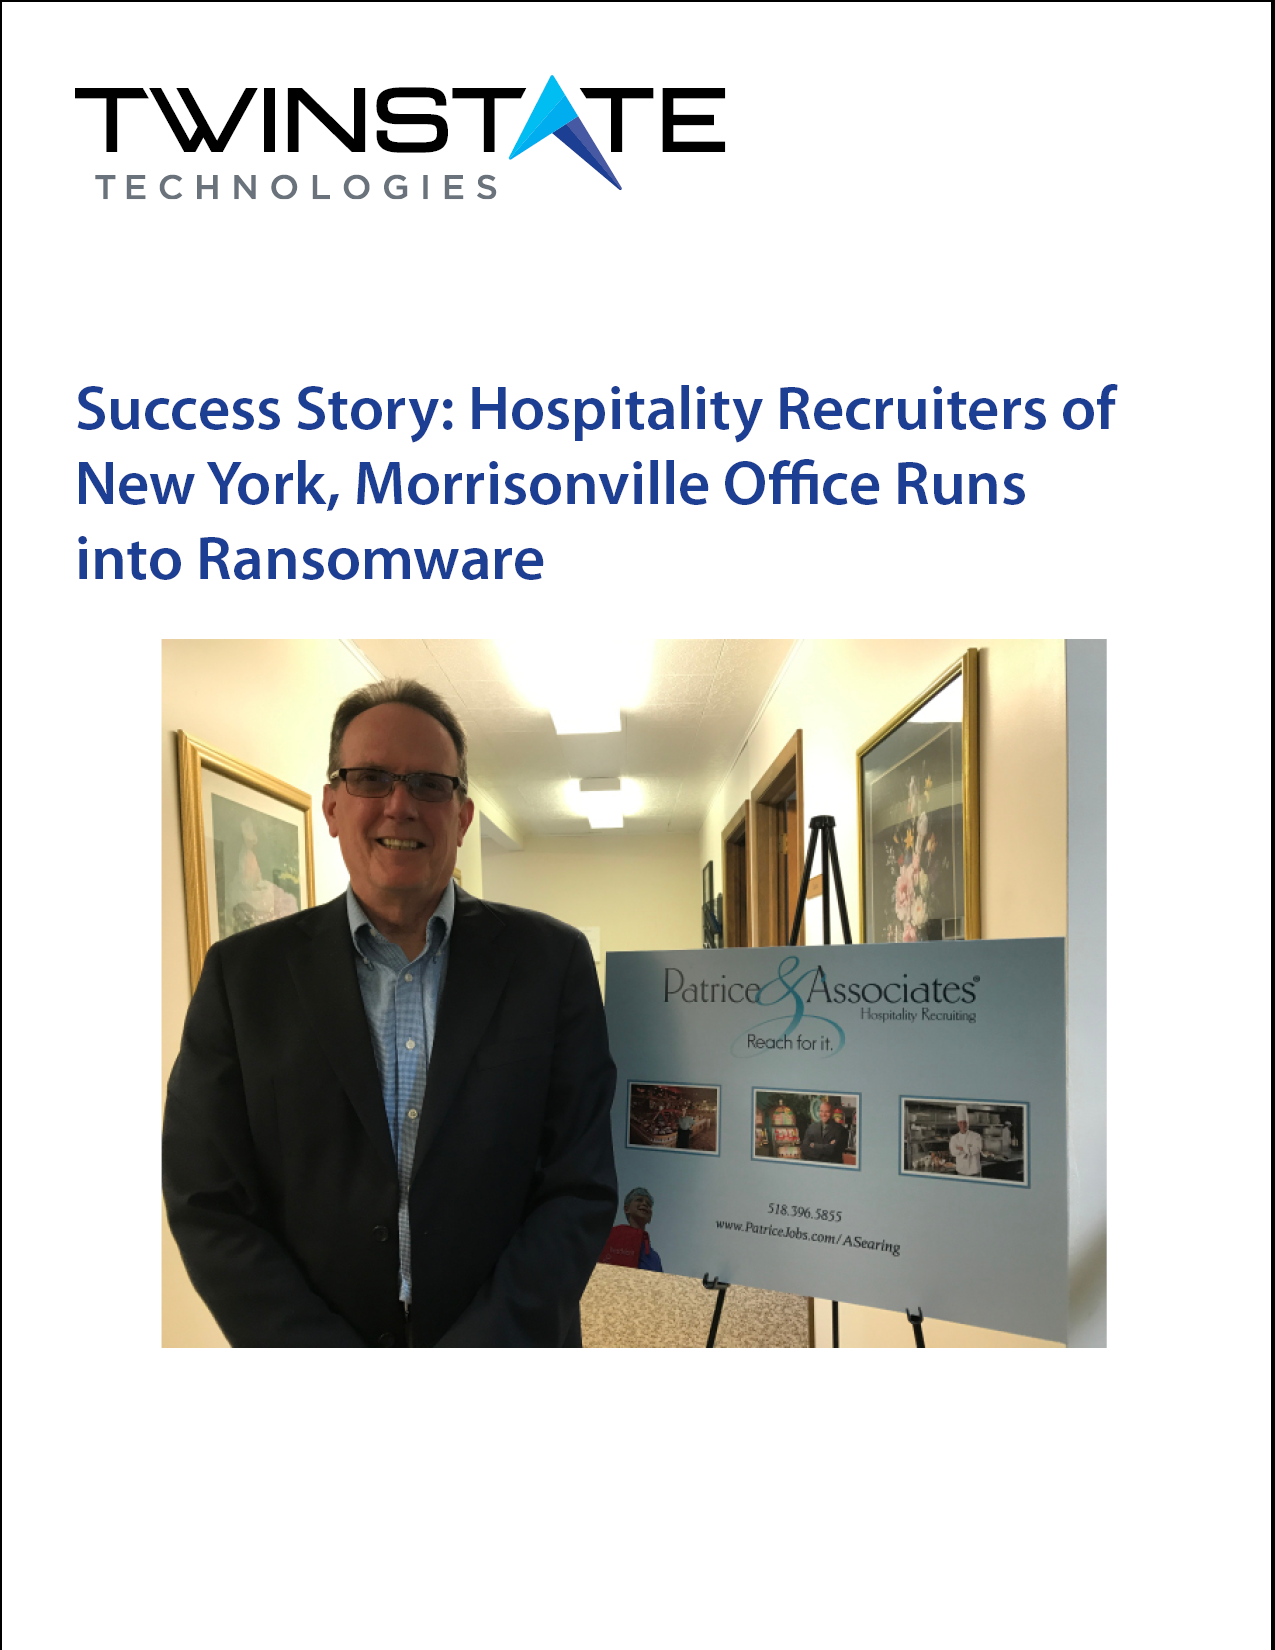 Case Study: Tony Searing, Morrisonville, New York, Hospitality Recruiters of New York